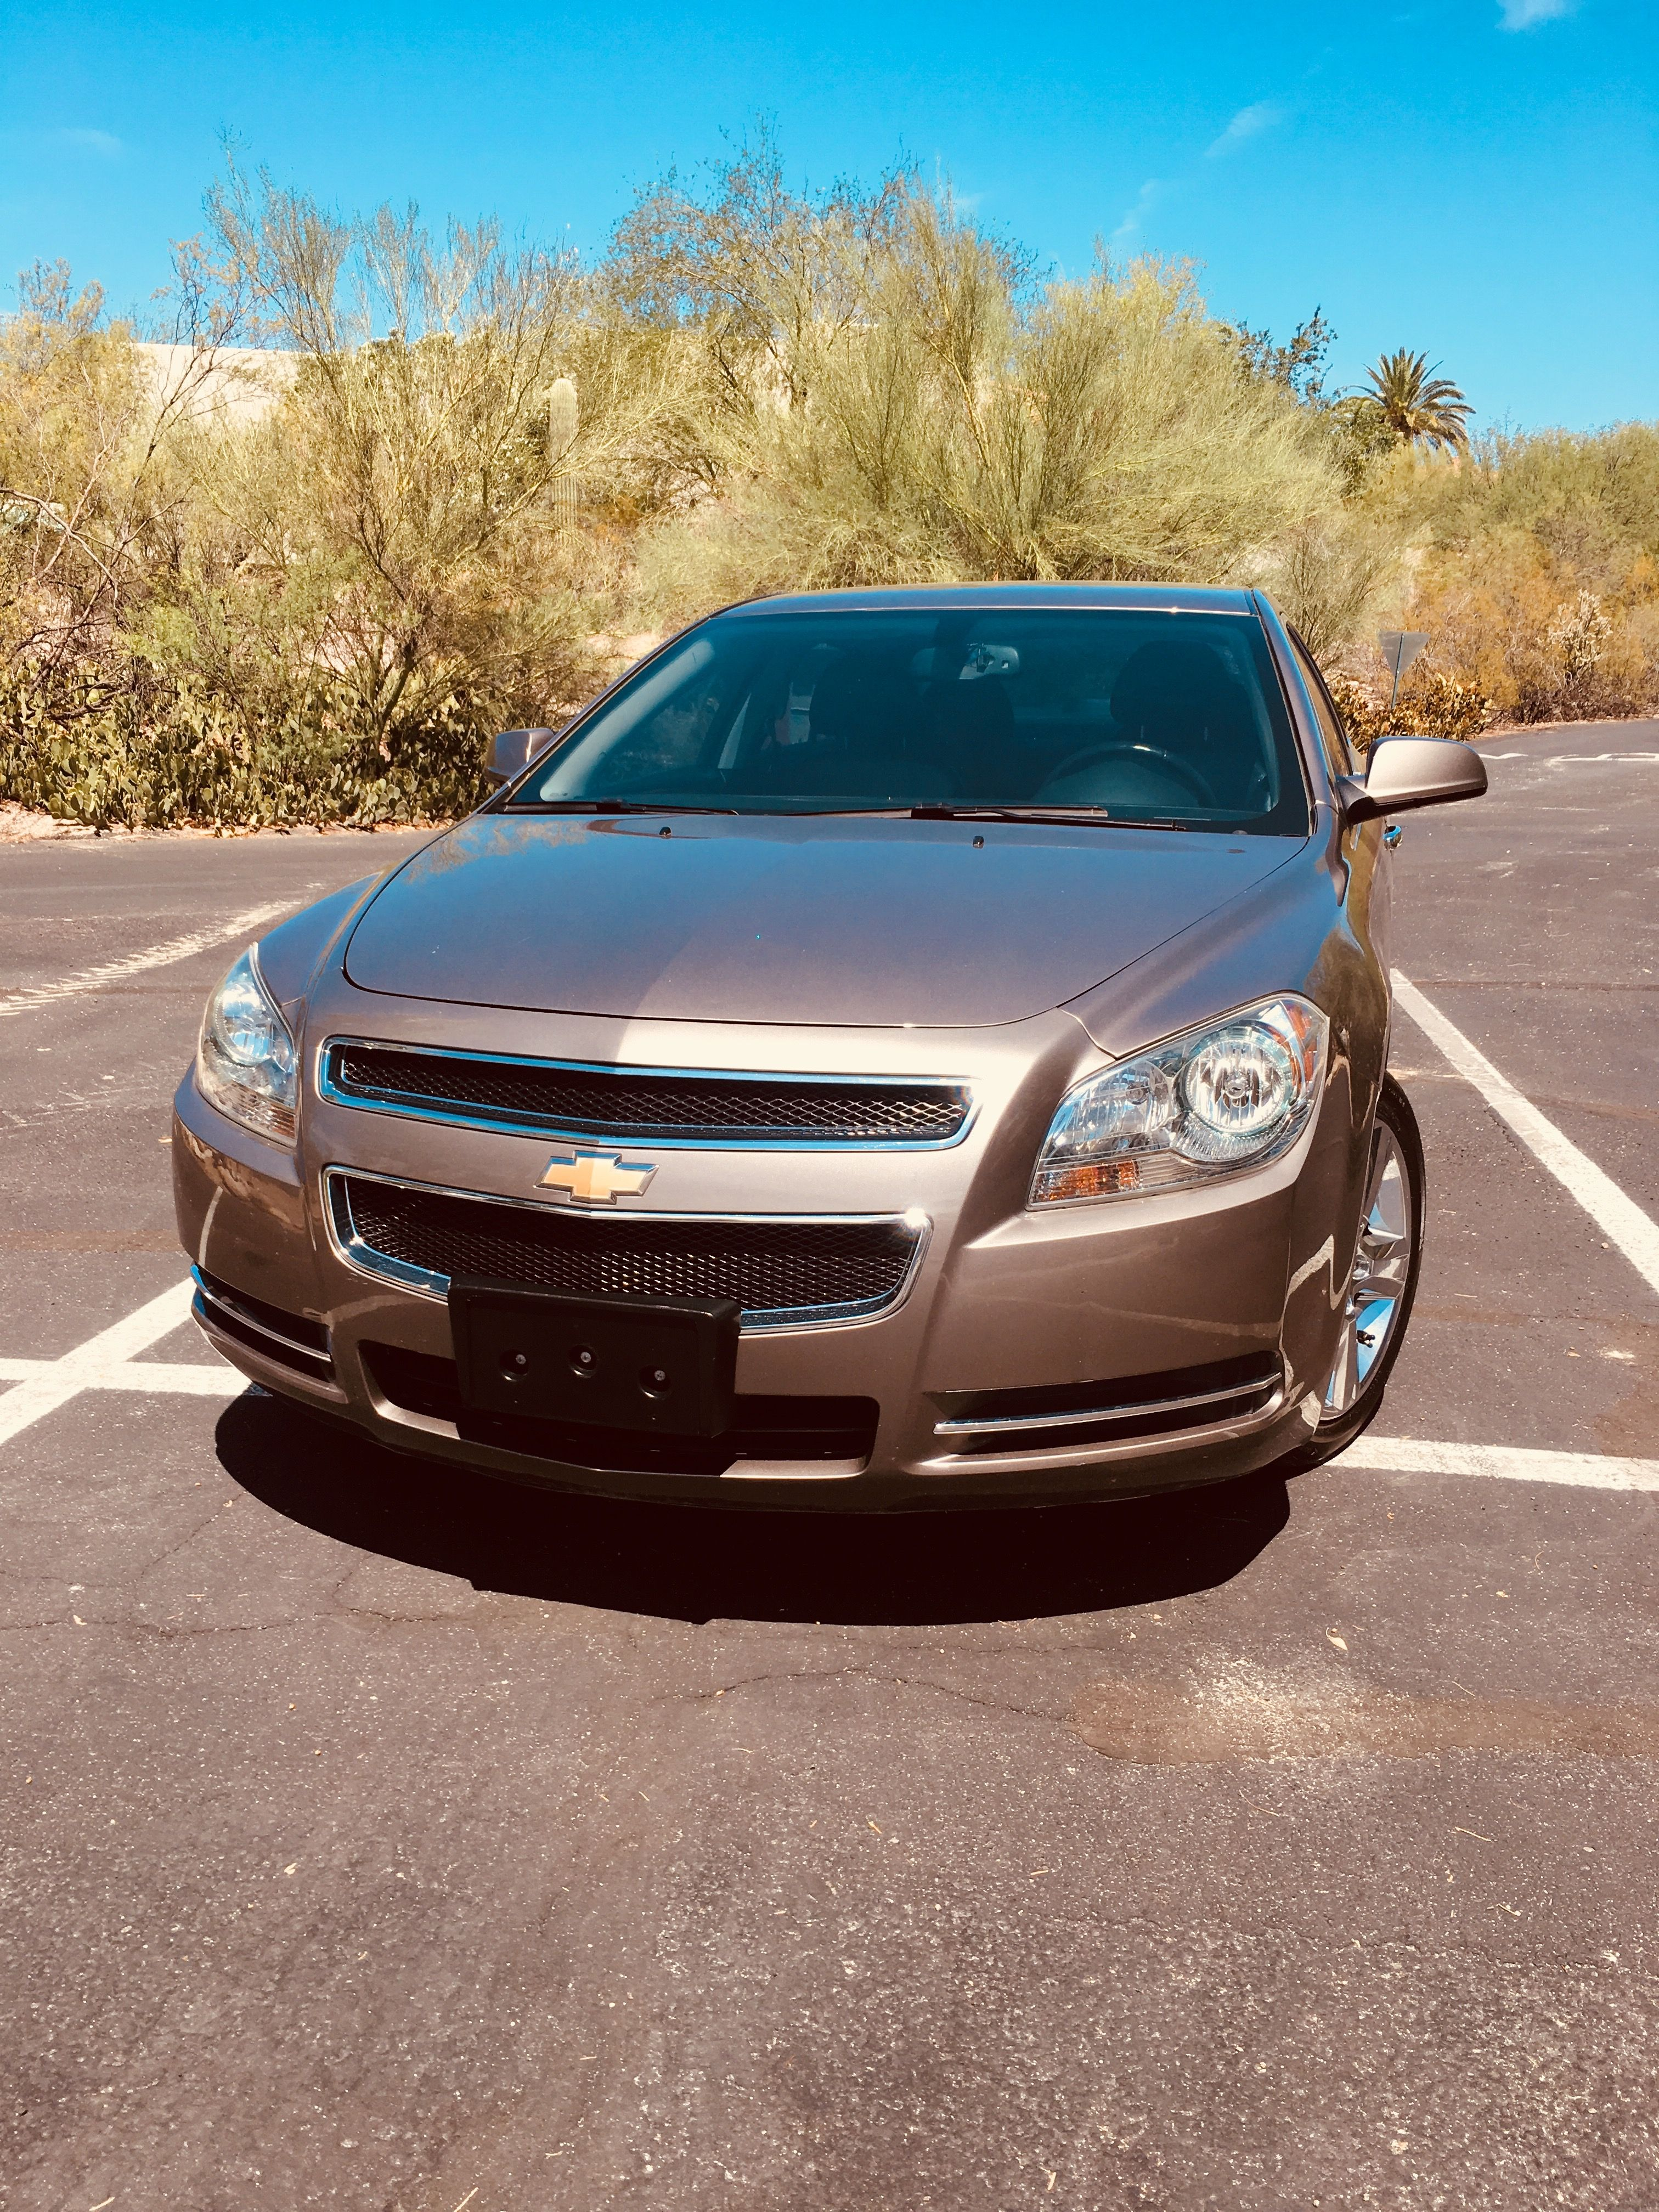 One Of Our Latest Collections Chevrolet Malibu Visit Our Location Goliath Auto Sales Tucson Arizona Cars For Sale Cars For Sale Used Chevrolet Malibu